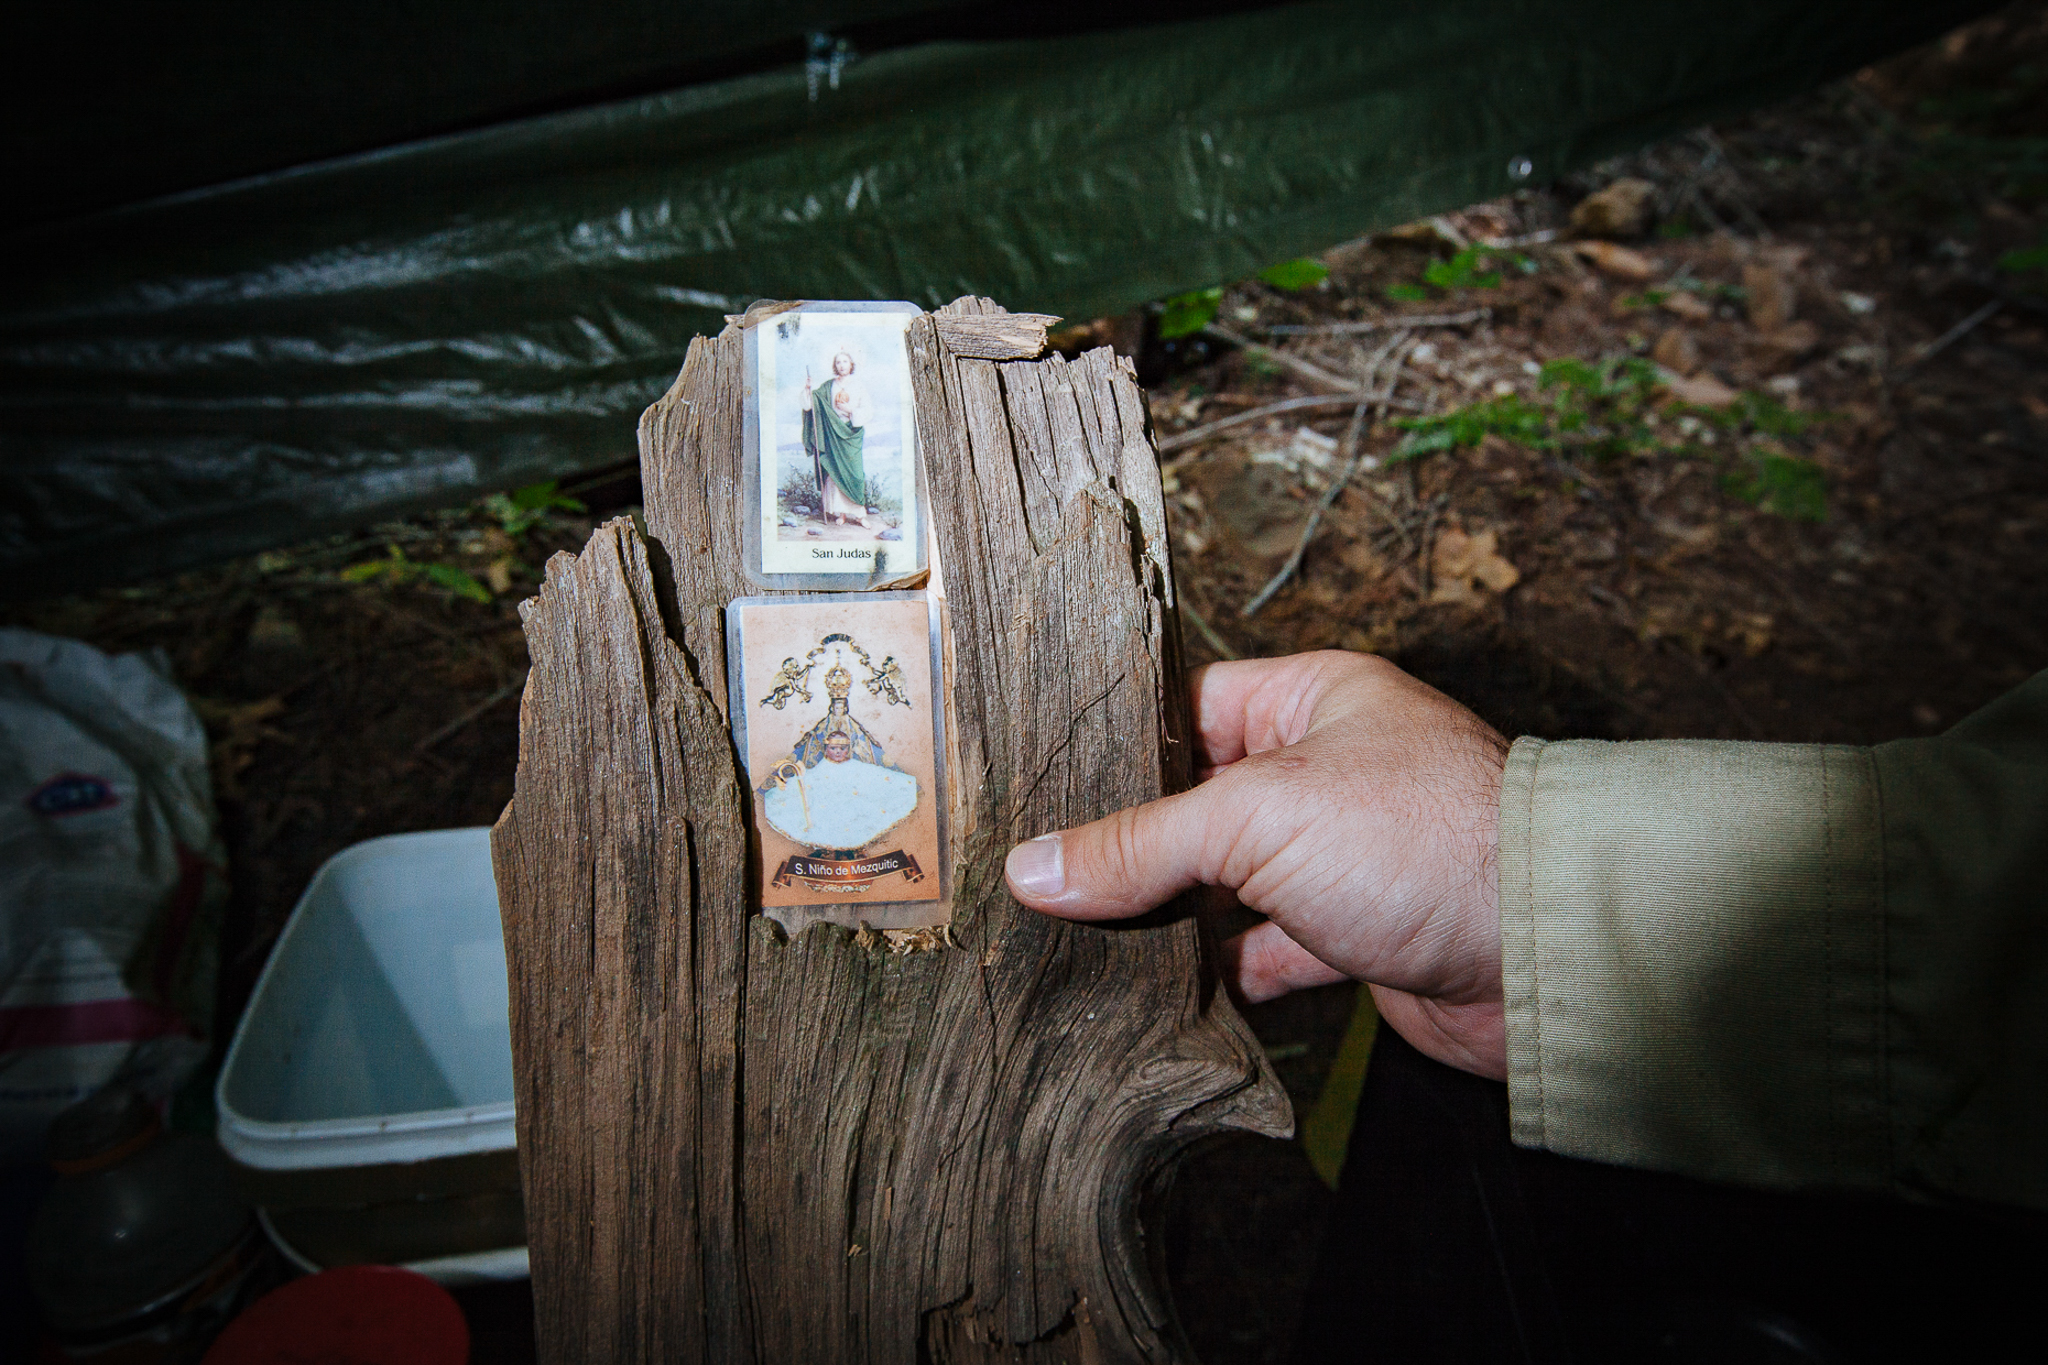 Officers often find evidence of religious shrines at grow camps. In this case, they found prayer cards for Saint Judas and a card symbolizing the Chapel of the Holy Child of Mezquitic Magdalena.